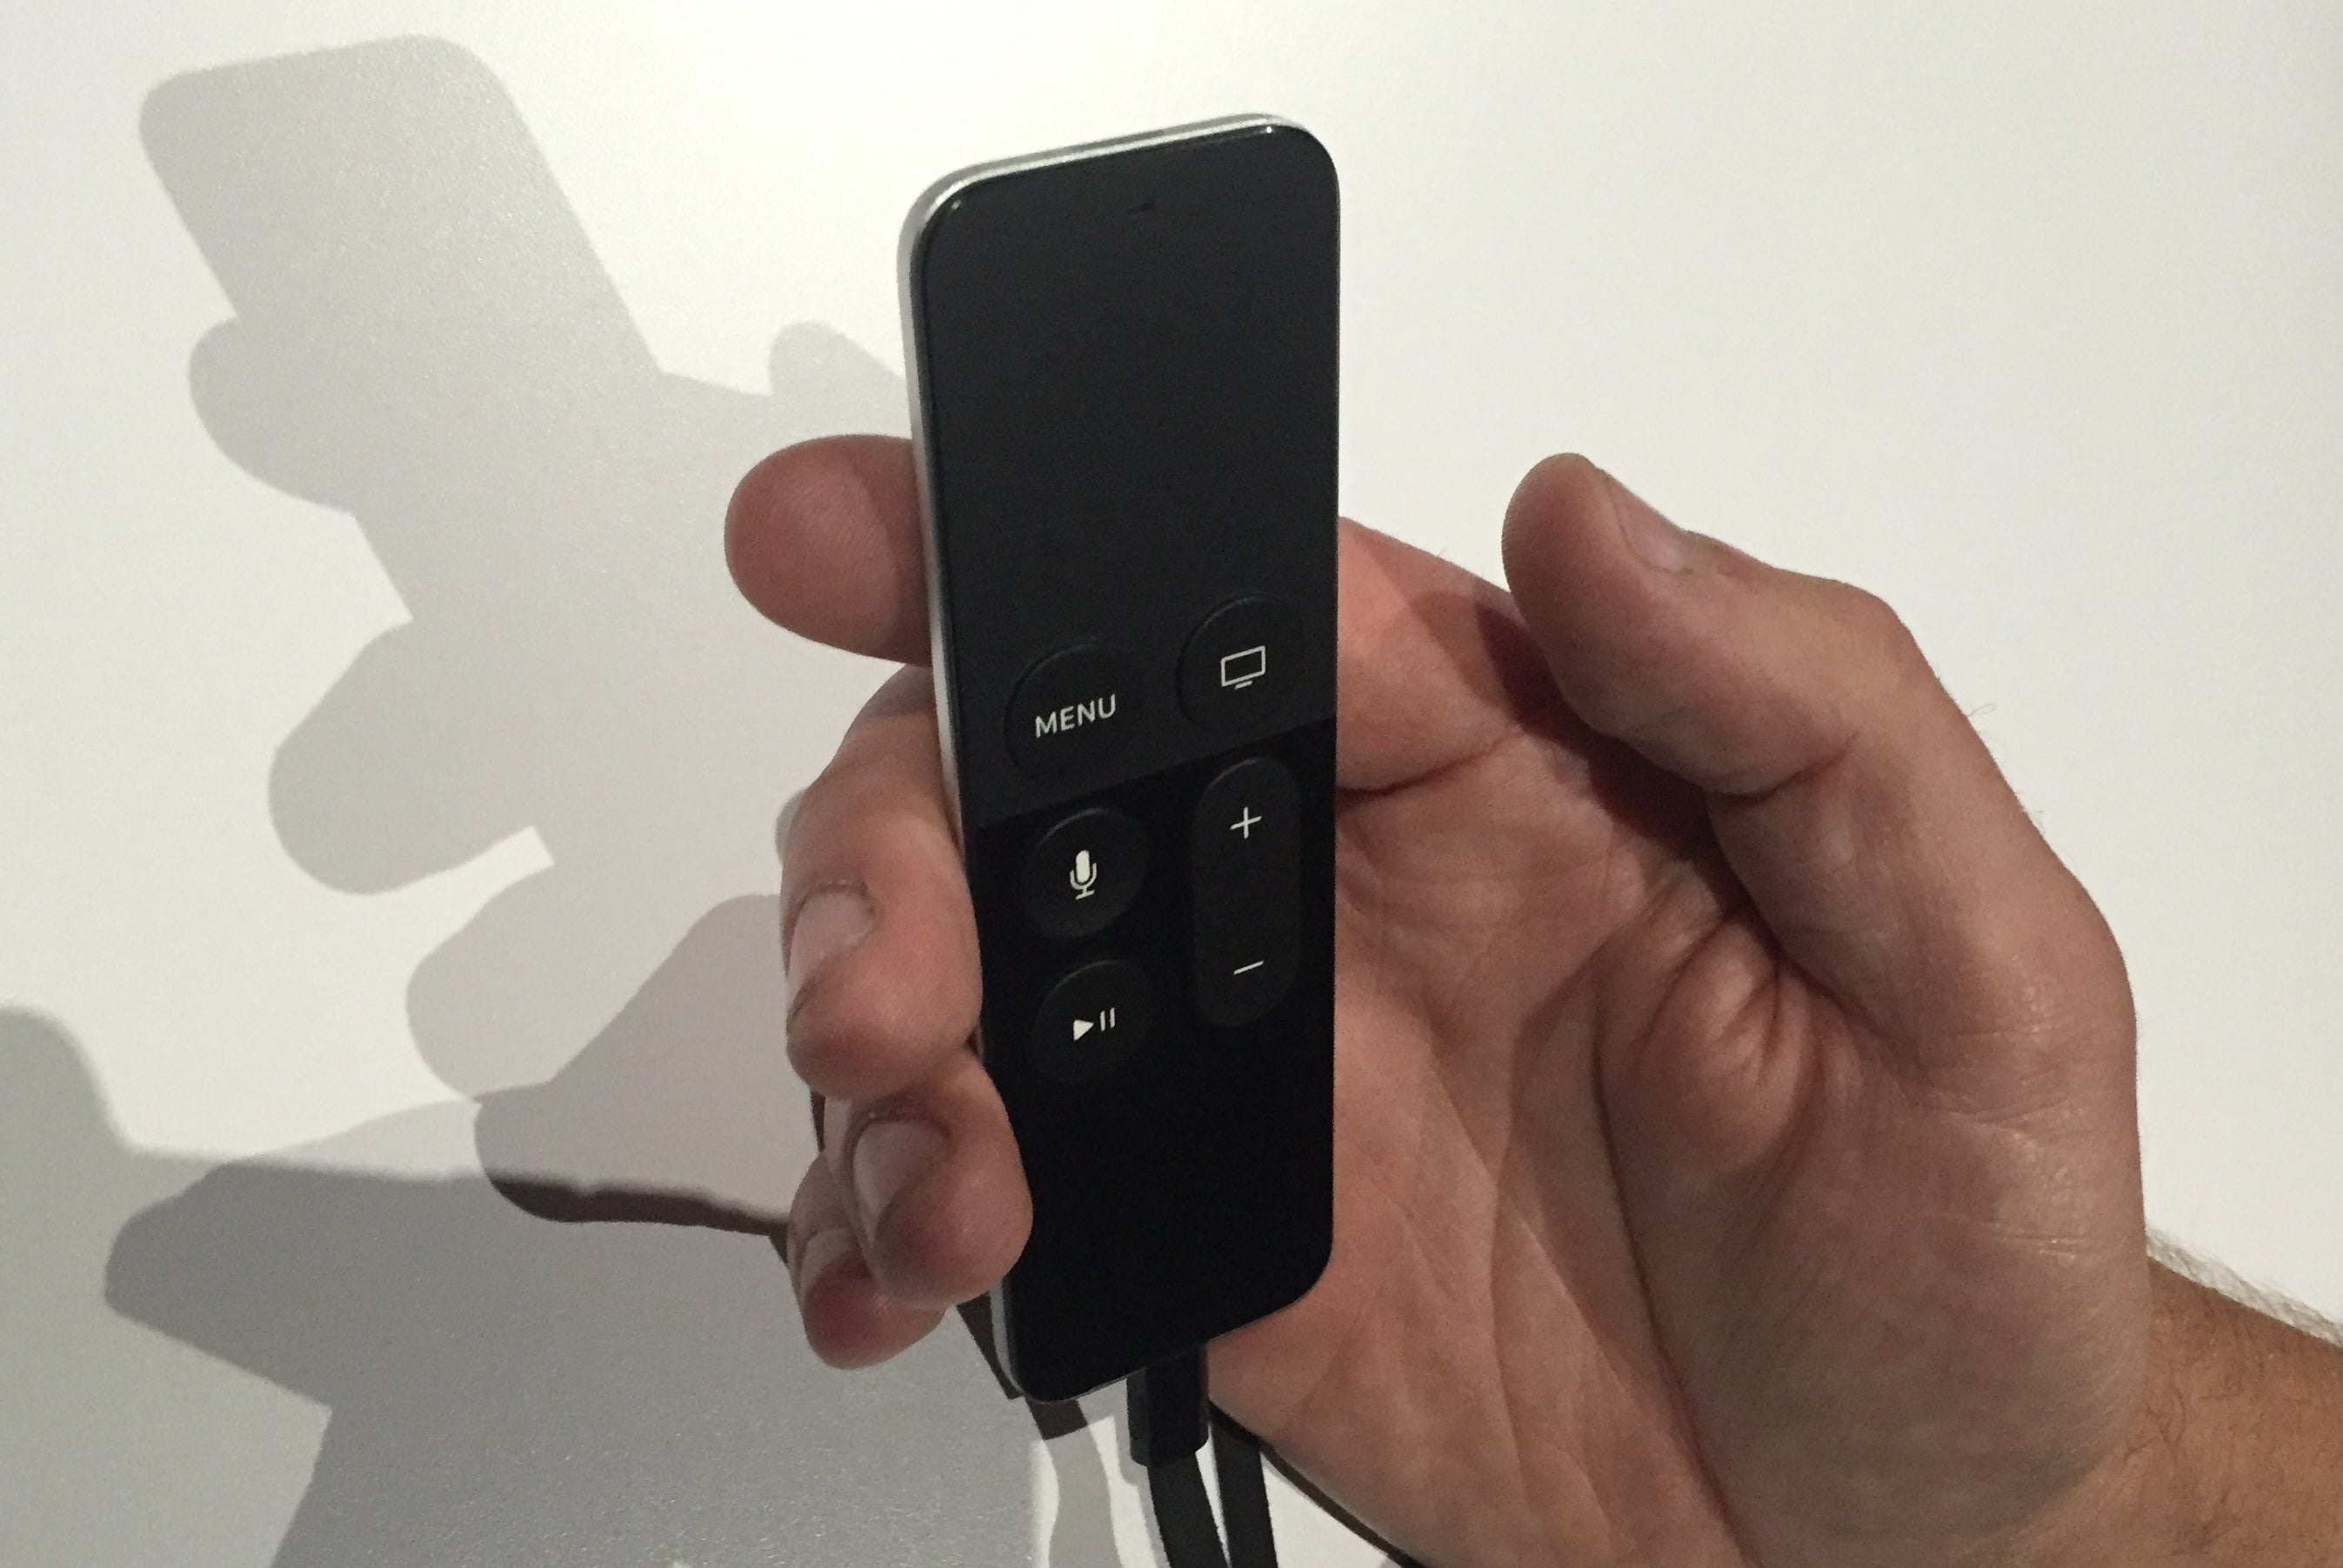 Hands-on with the new Apple TV and Siri Remote